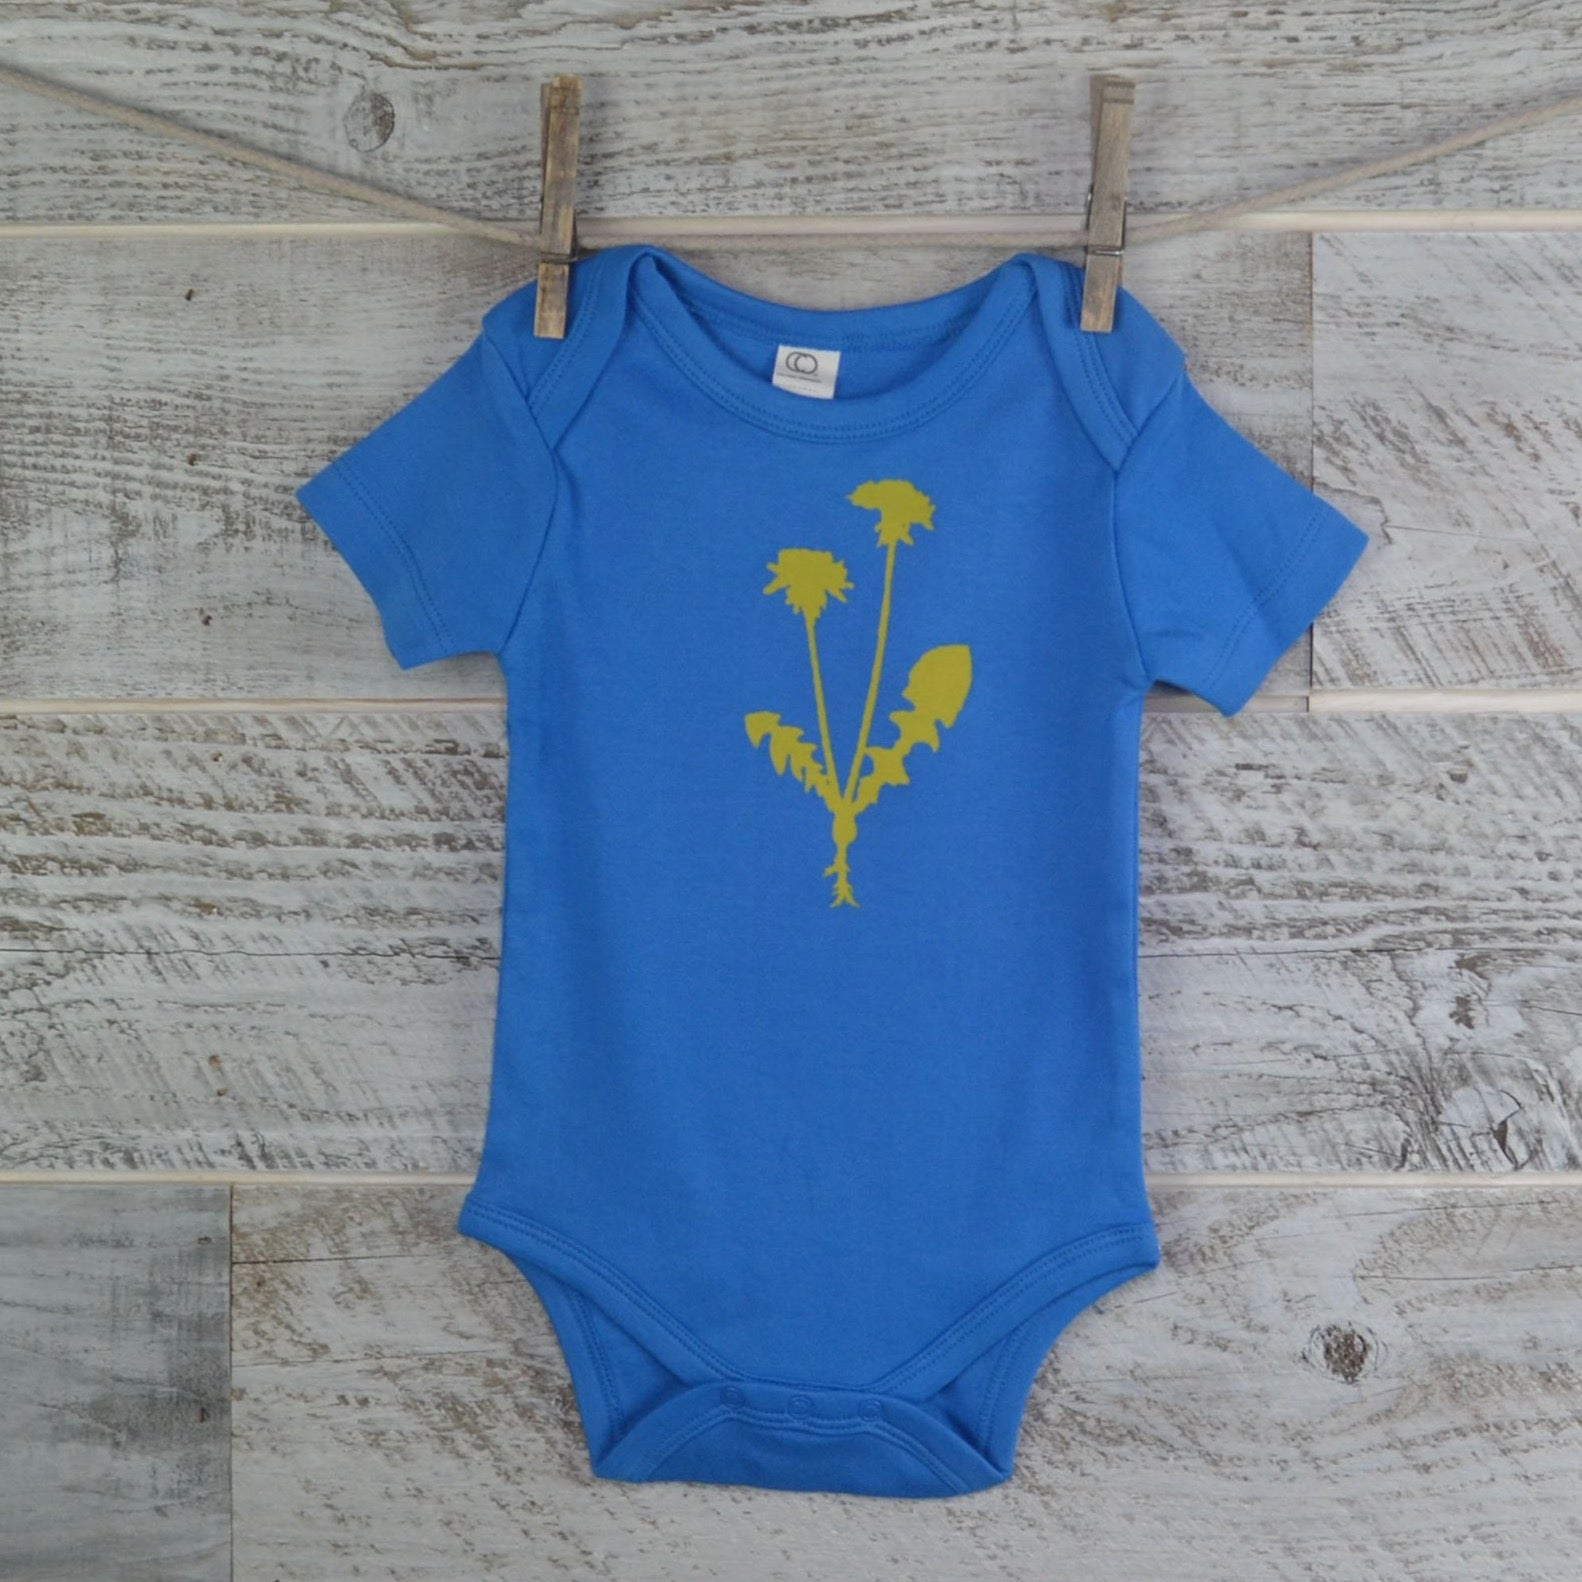 b972a22aa2fa Organic Cotton Onesie Short Sleeve Blue - Dandelion Flower - Think ...